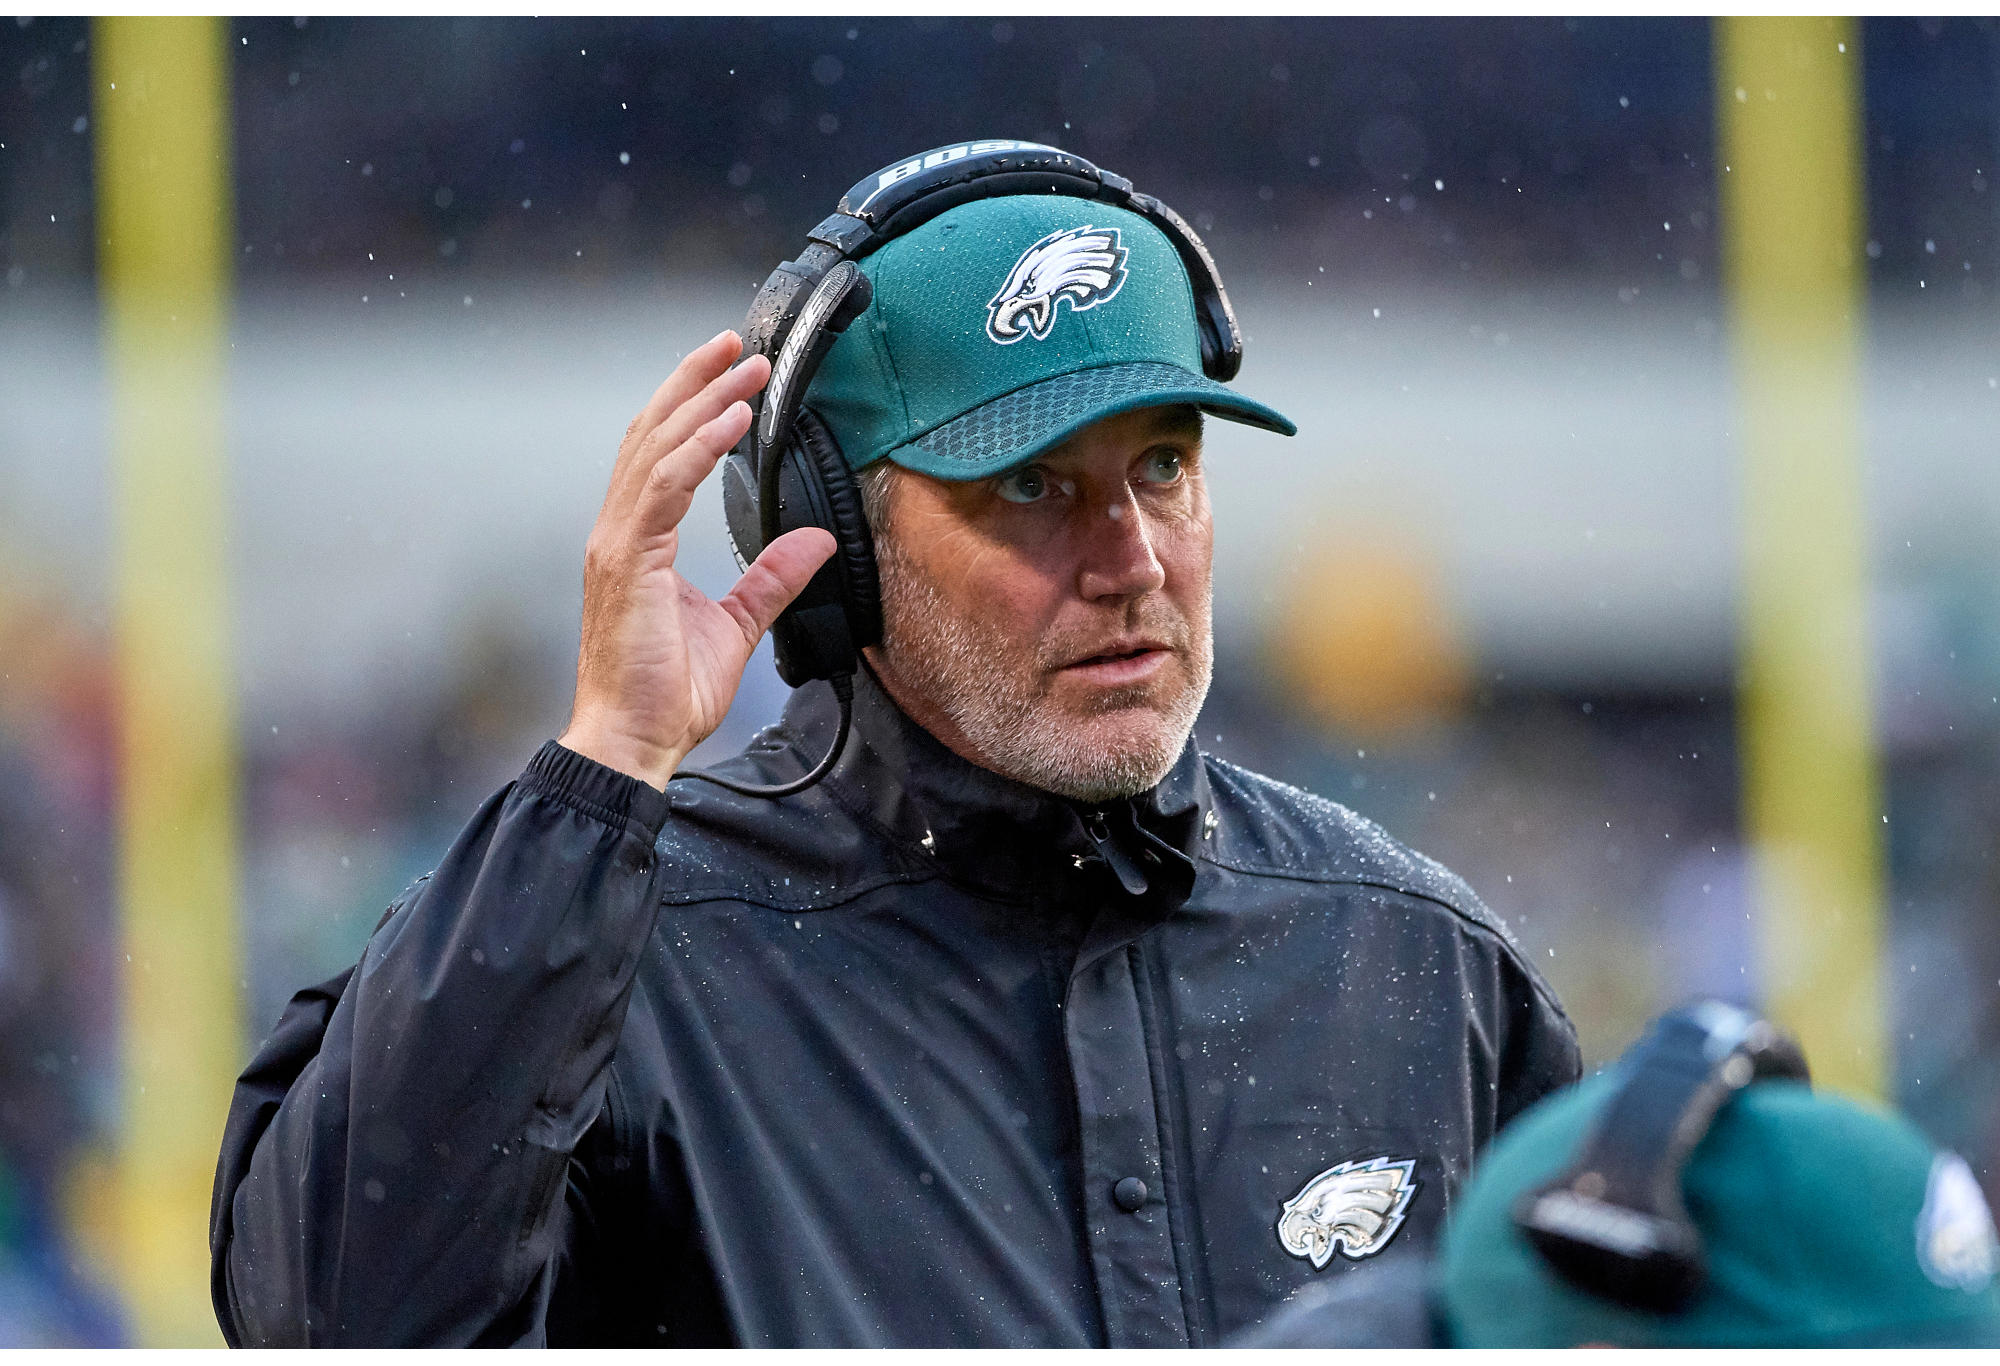 Philadelphia Eagles offensive coordinator Frank Reich looks on during the NFL football game against the San Francisco 49ers